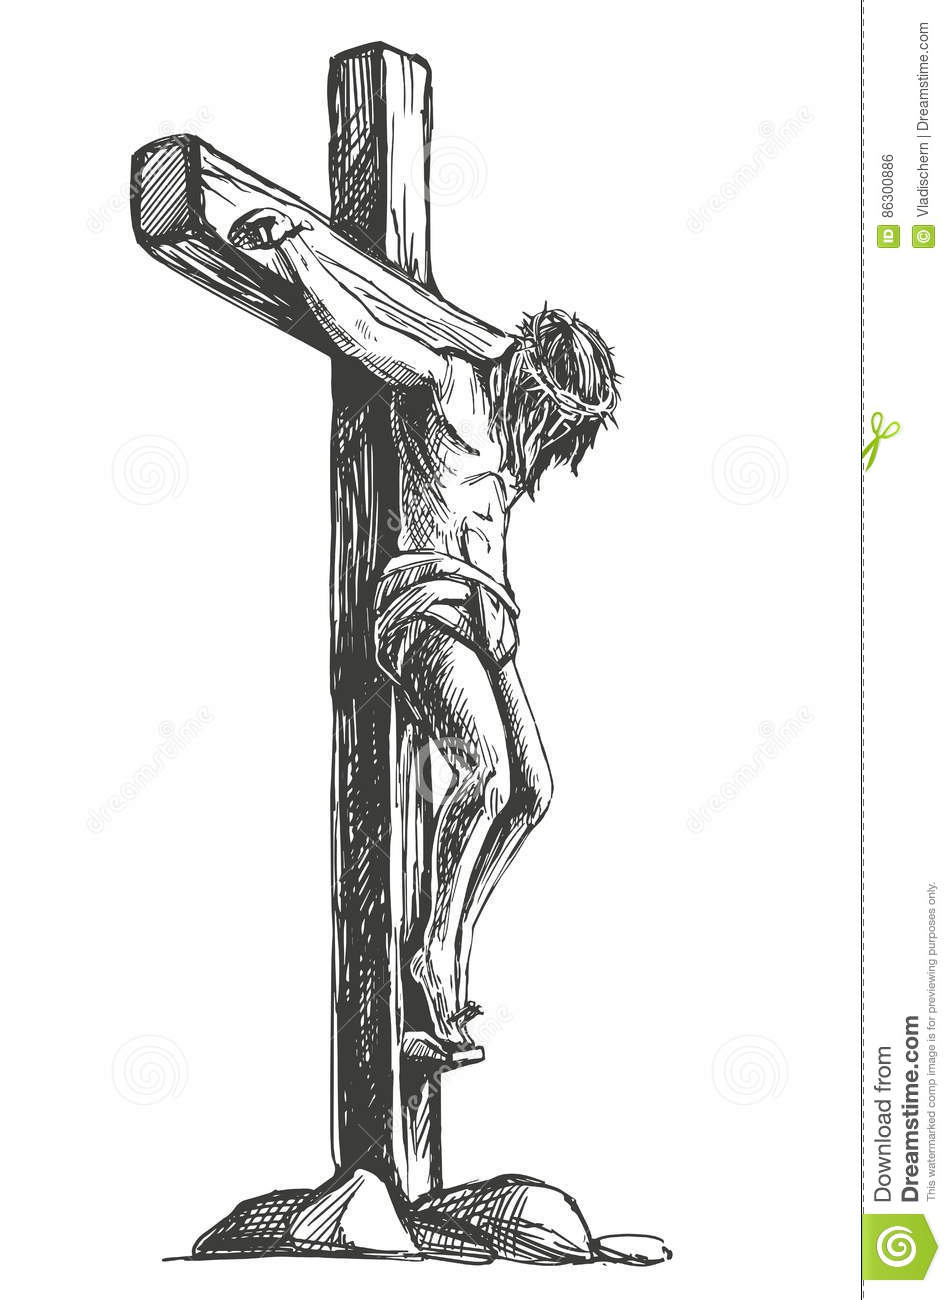 Jesus christ the son of god in a crown of thorns on his head a jesus christ the son of god in a crown of thorns on his head a symbol of christianity hand drawn vector illustration buycottarizona Image collections